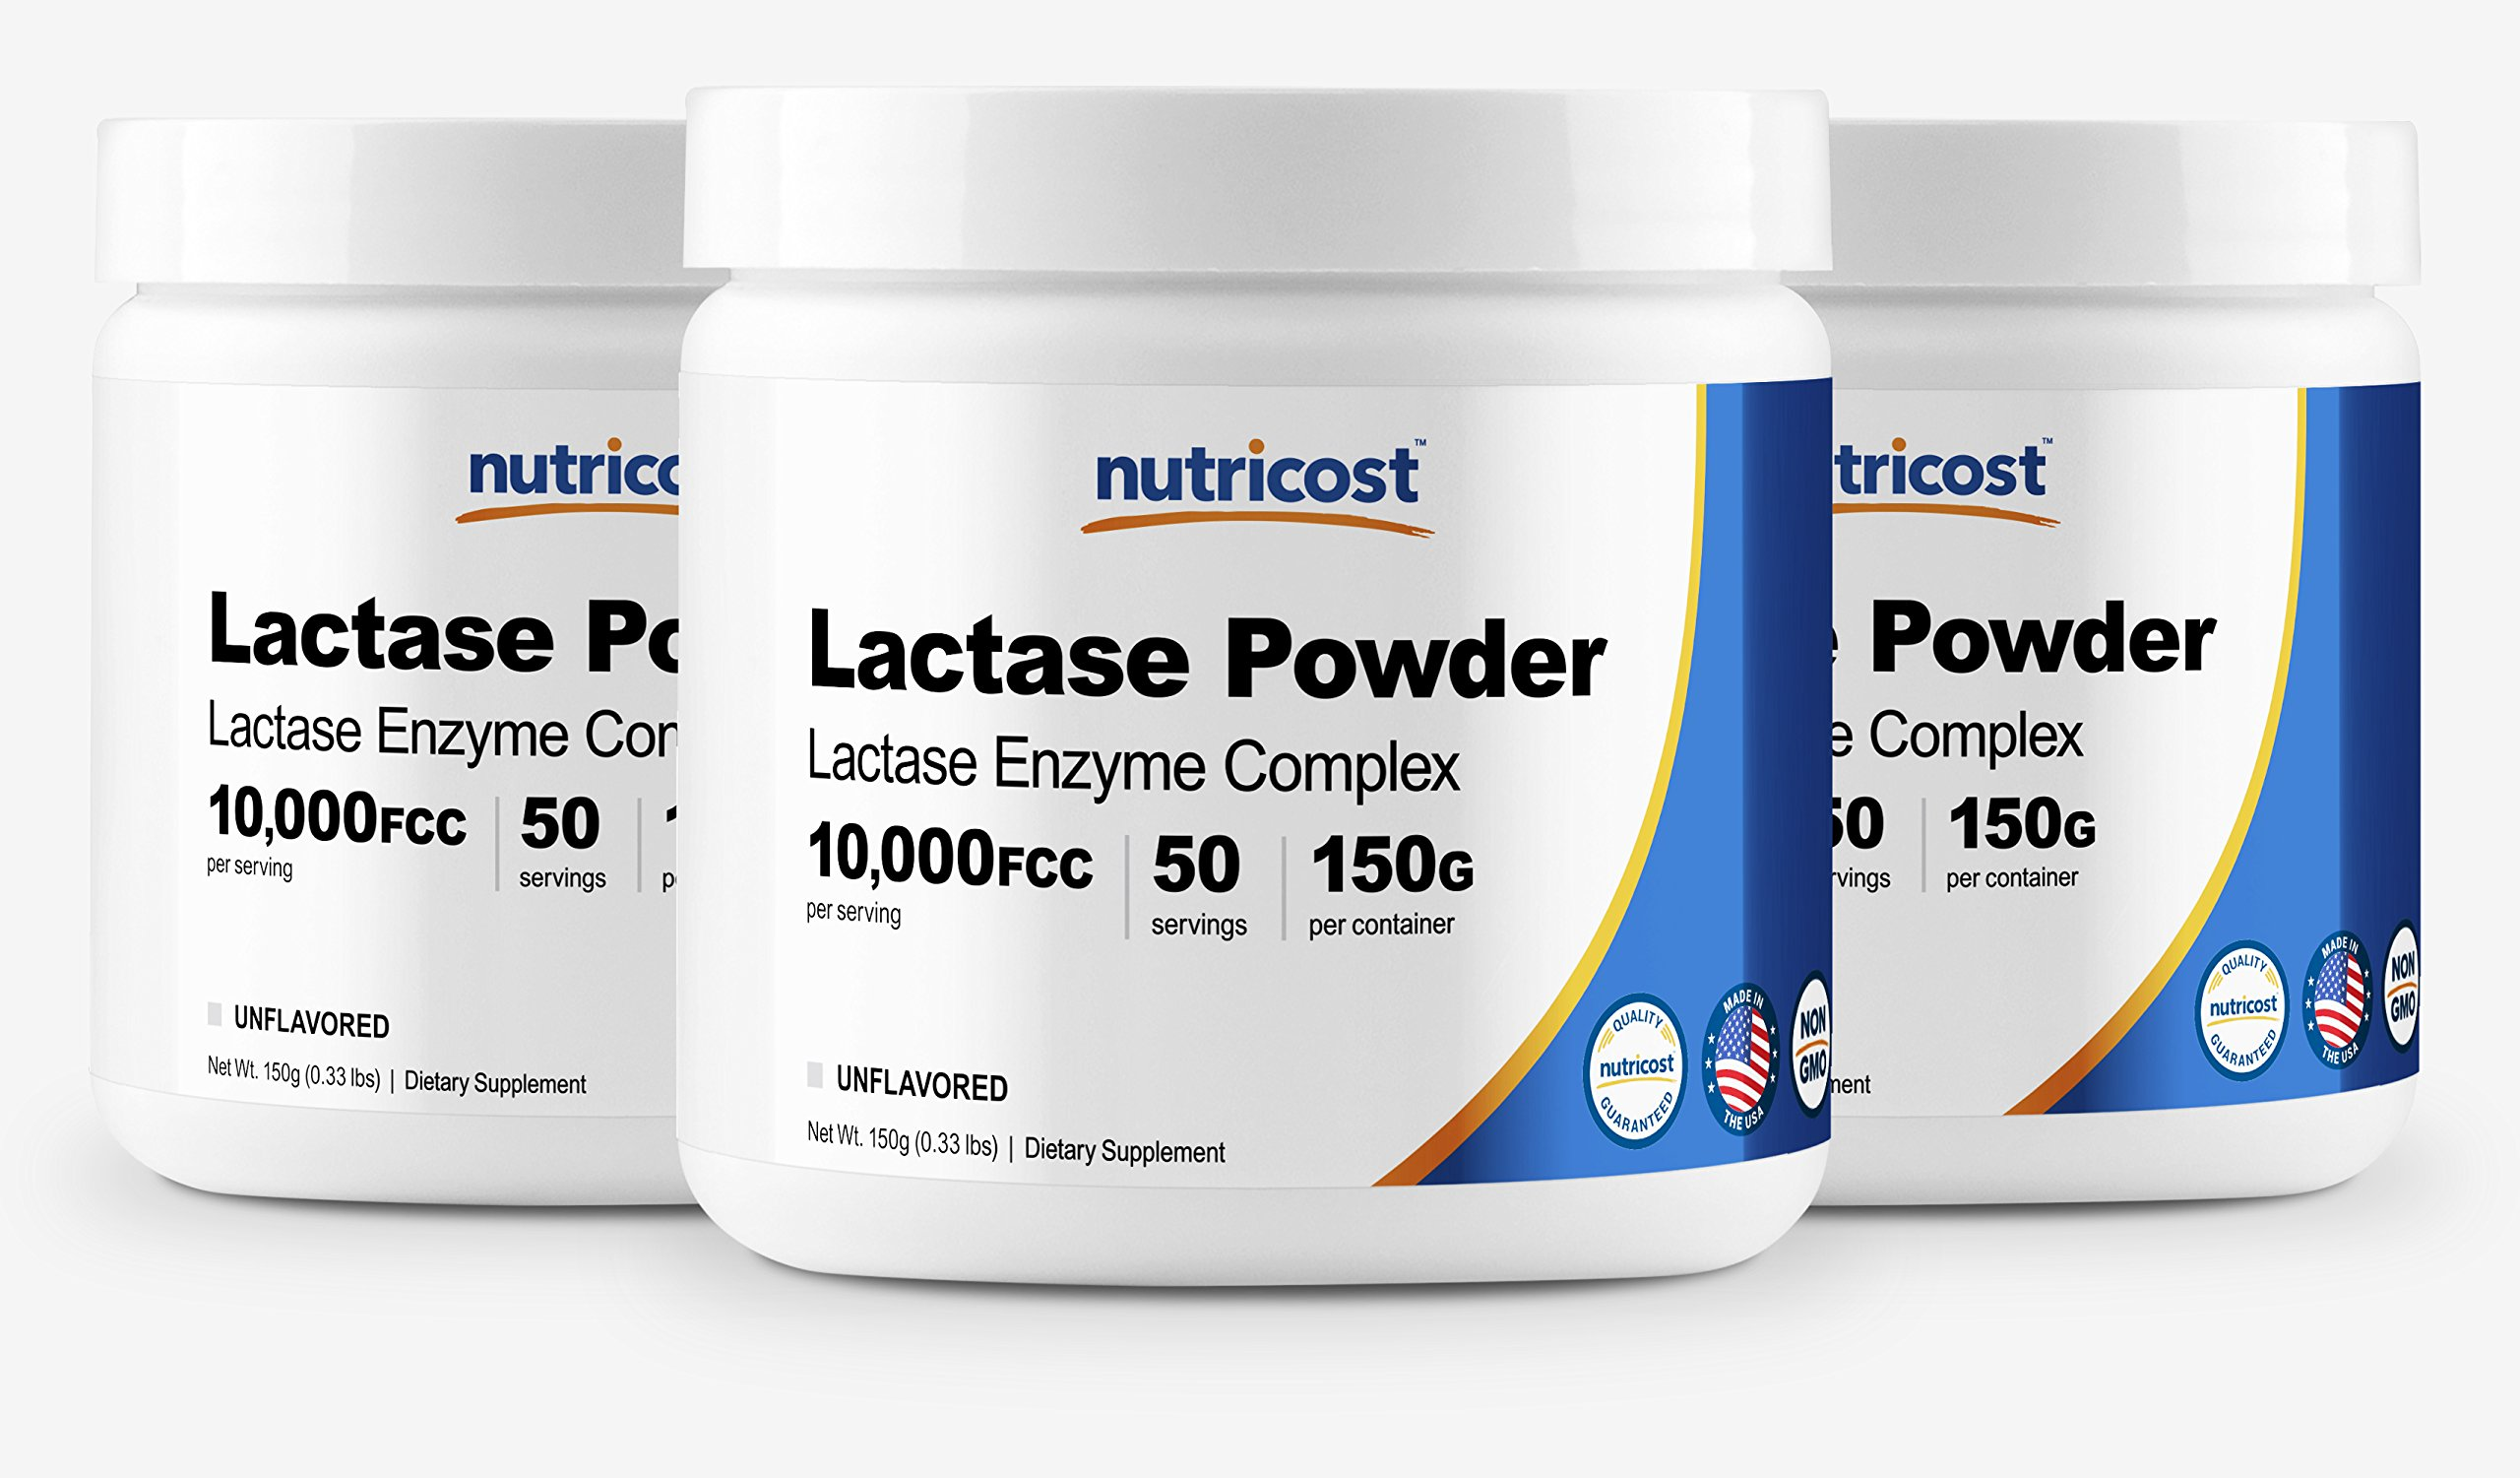 Nutricost High Quality Lactase Enzyme Powder 150G - Lactase Enzyme Complex (3 Bottles) - 10,000FCC Per Serving, Non GMO, Gluten Free by Nutricost